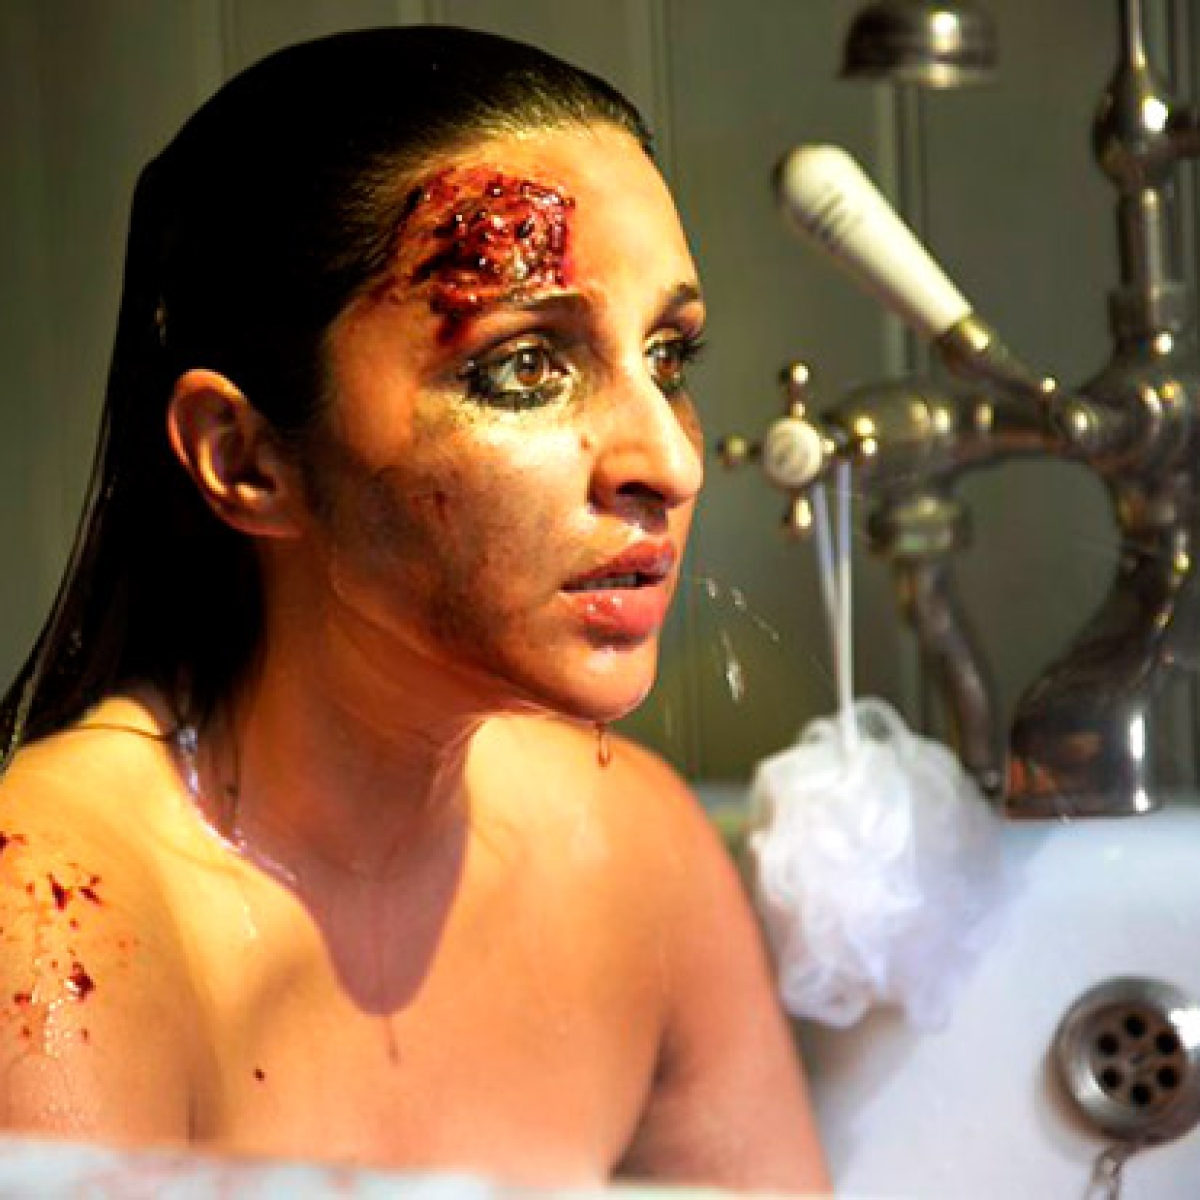 Parineeti Chopra looks bruised and scared in the first look of 'The Girl On The Train'